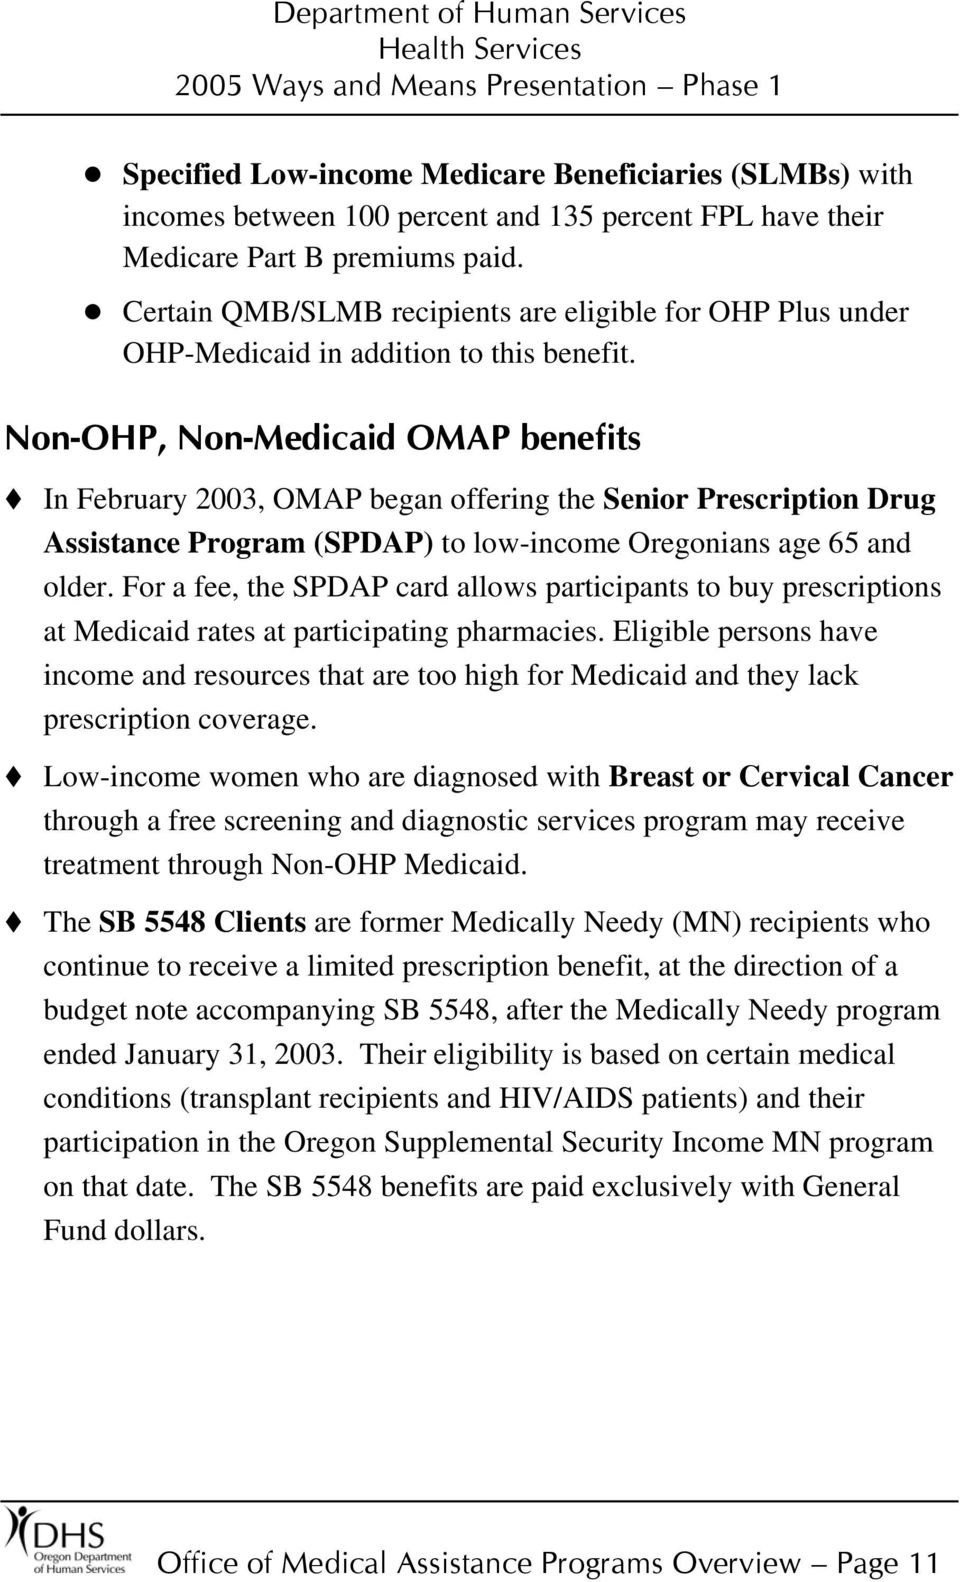 Non-OHP, Non-Medicaid OMAP benefits In February 2003, OMAP began offering the Senior Prescription Drug Assistance Program (SPDAP) to low-income Oregonians age 65 and older.